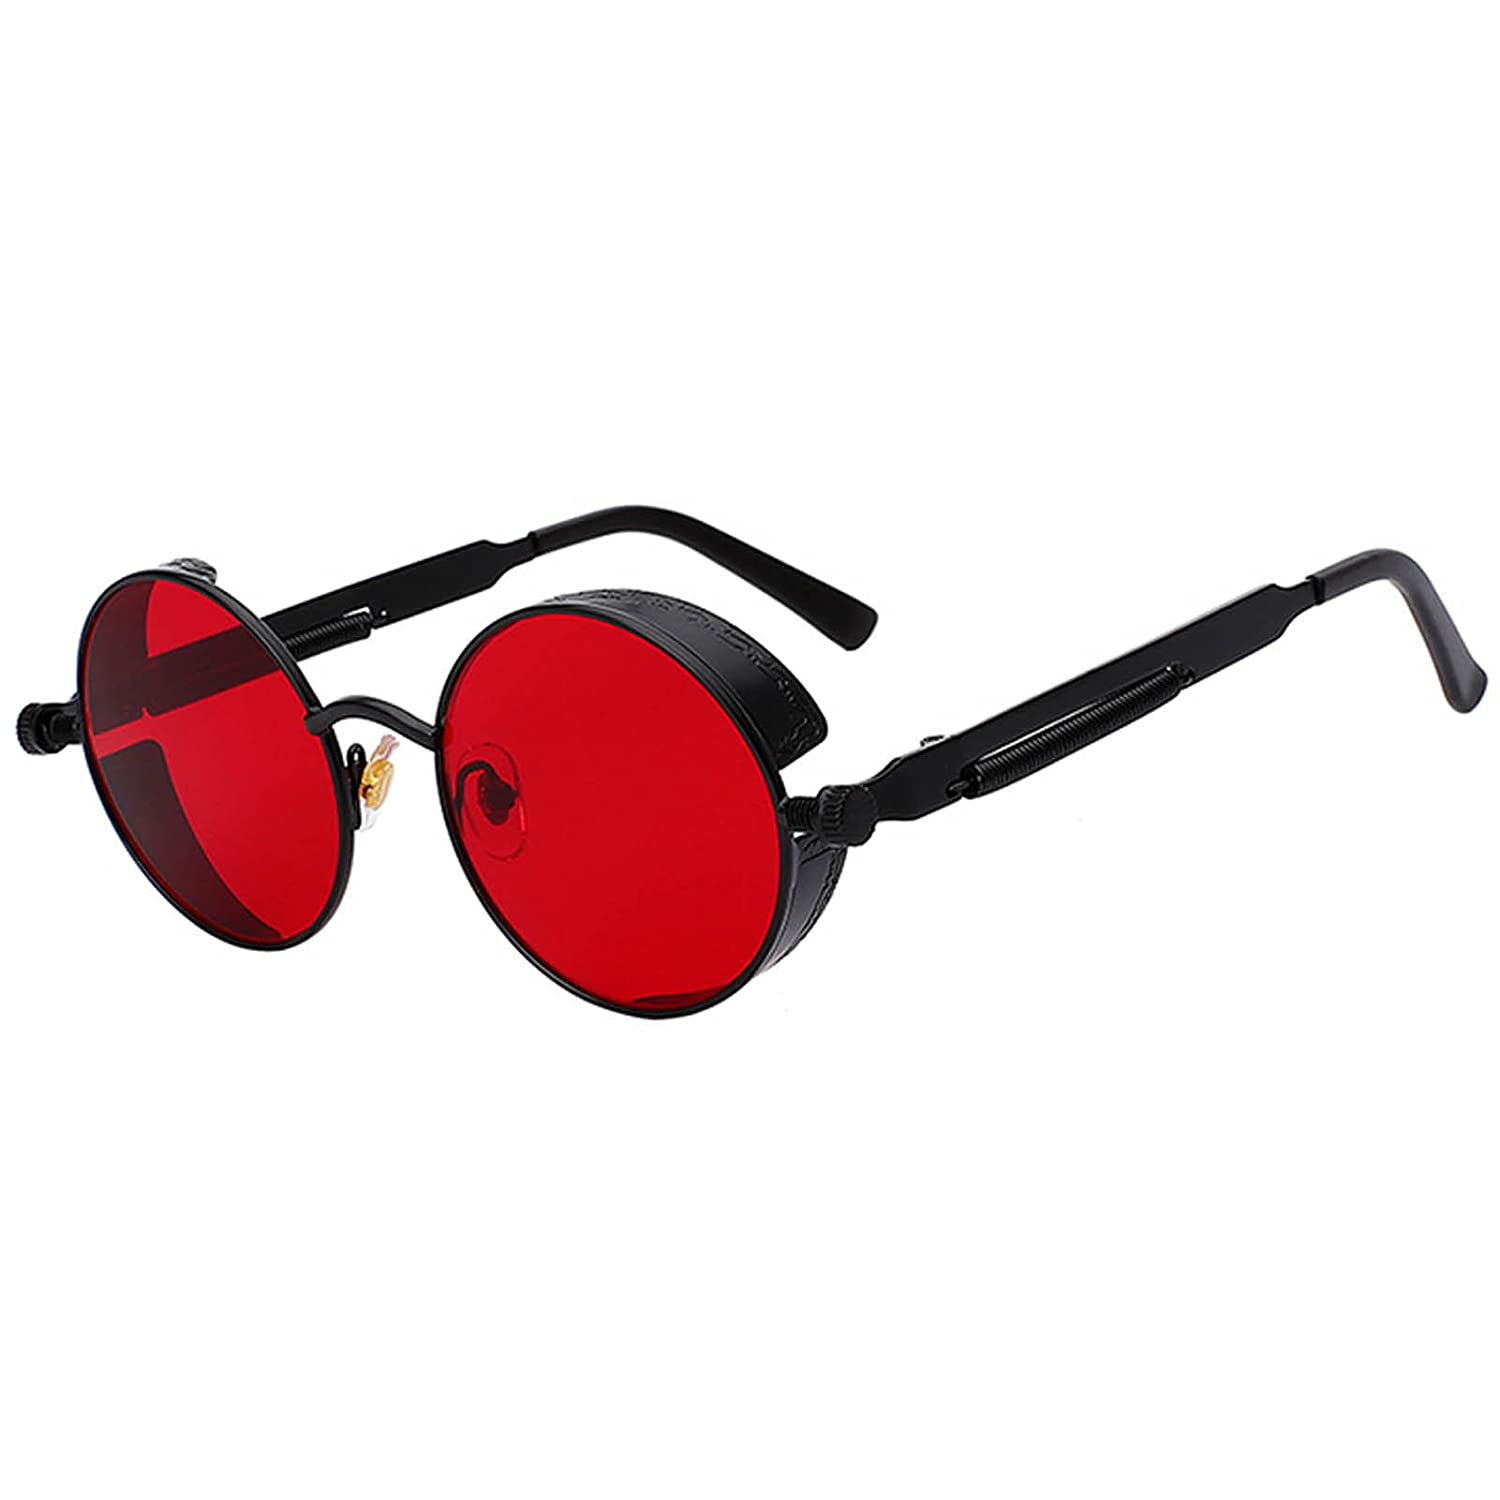 cc4256c9b Amazon.com: Steampunk Retro Gothic Vintage Hippie Black Metal Round Circle  Frame Sunglasses Sea Red Lens OWL: Clothing